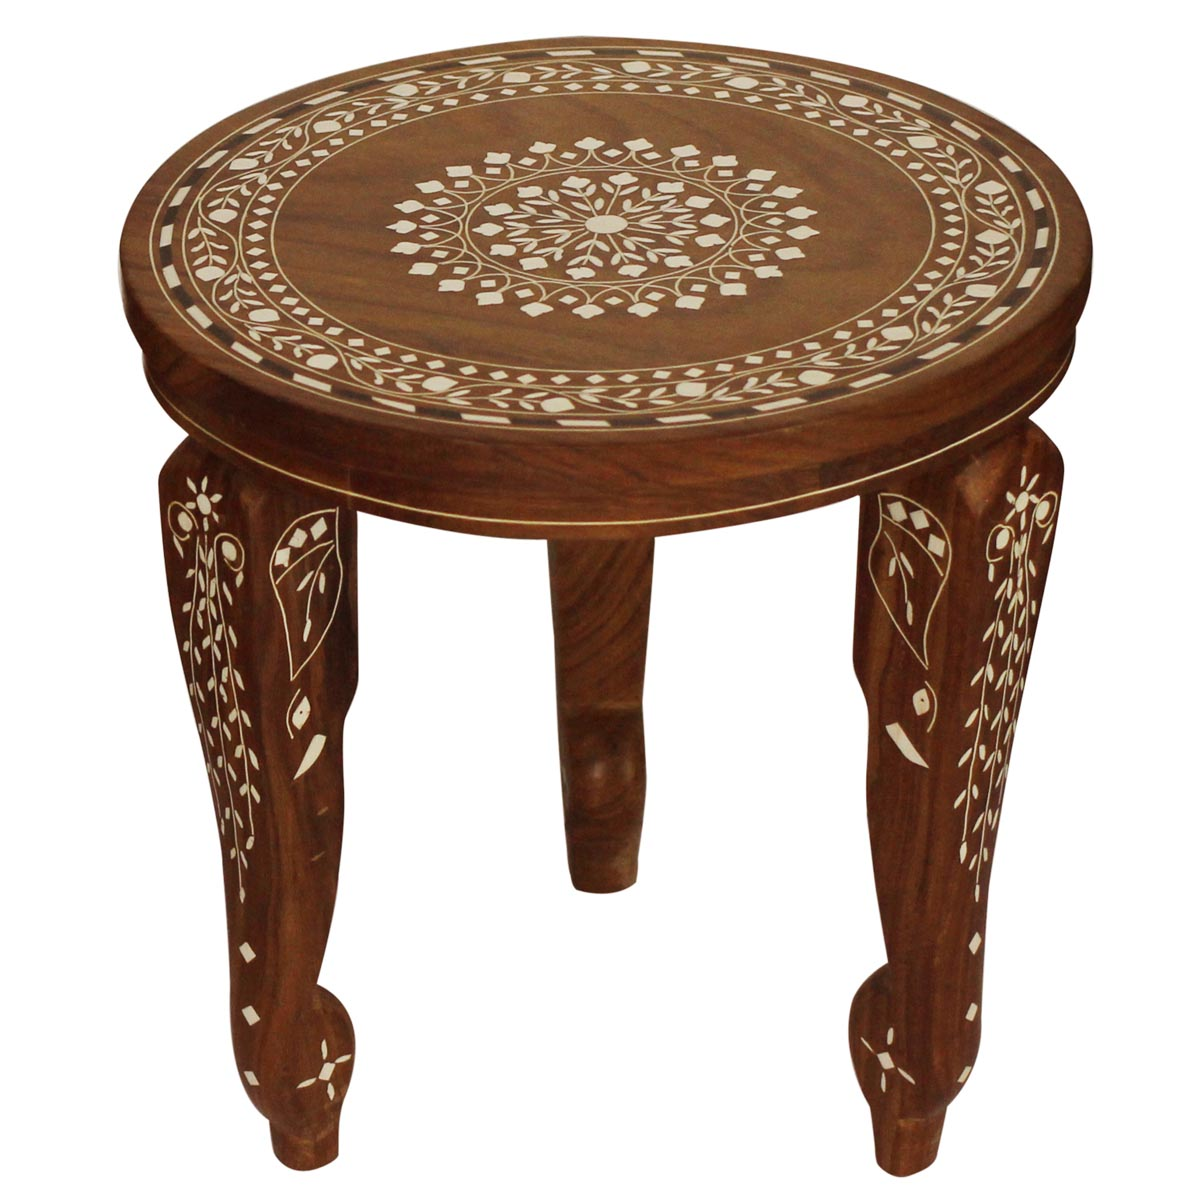 whole round wooden leg stand accent table with removable acrylic legs floral mandala small patio dark wood nightstands grill solid room essentials lamp ashley furniture modern